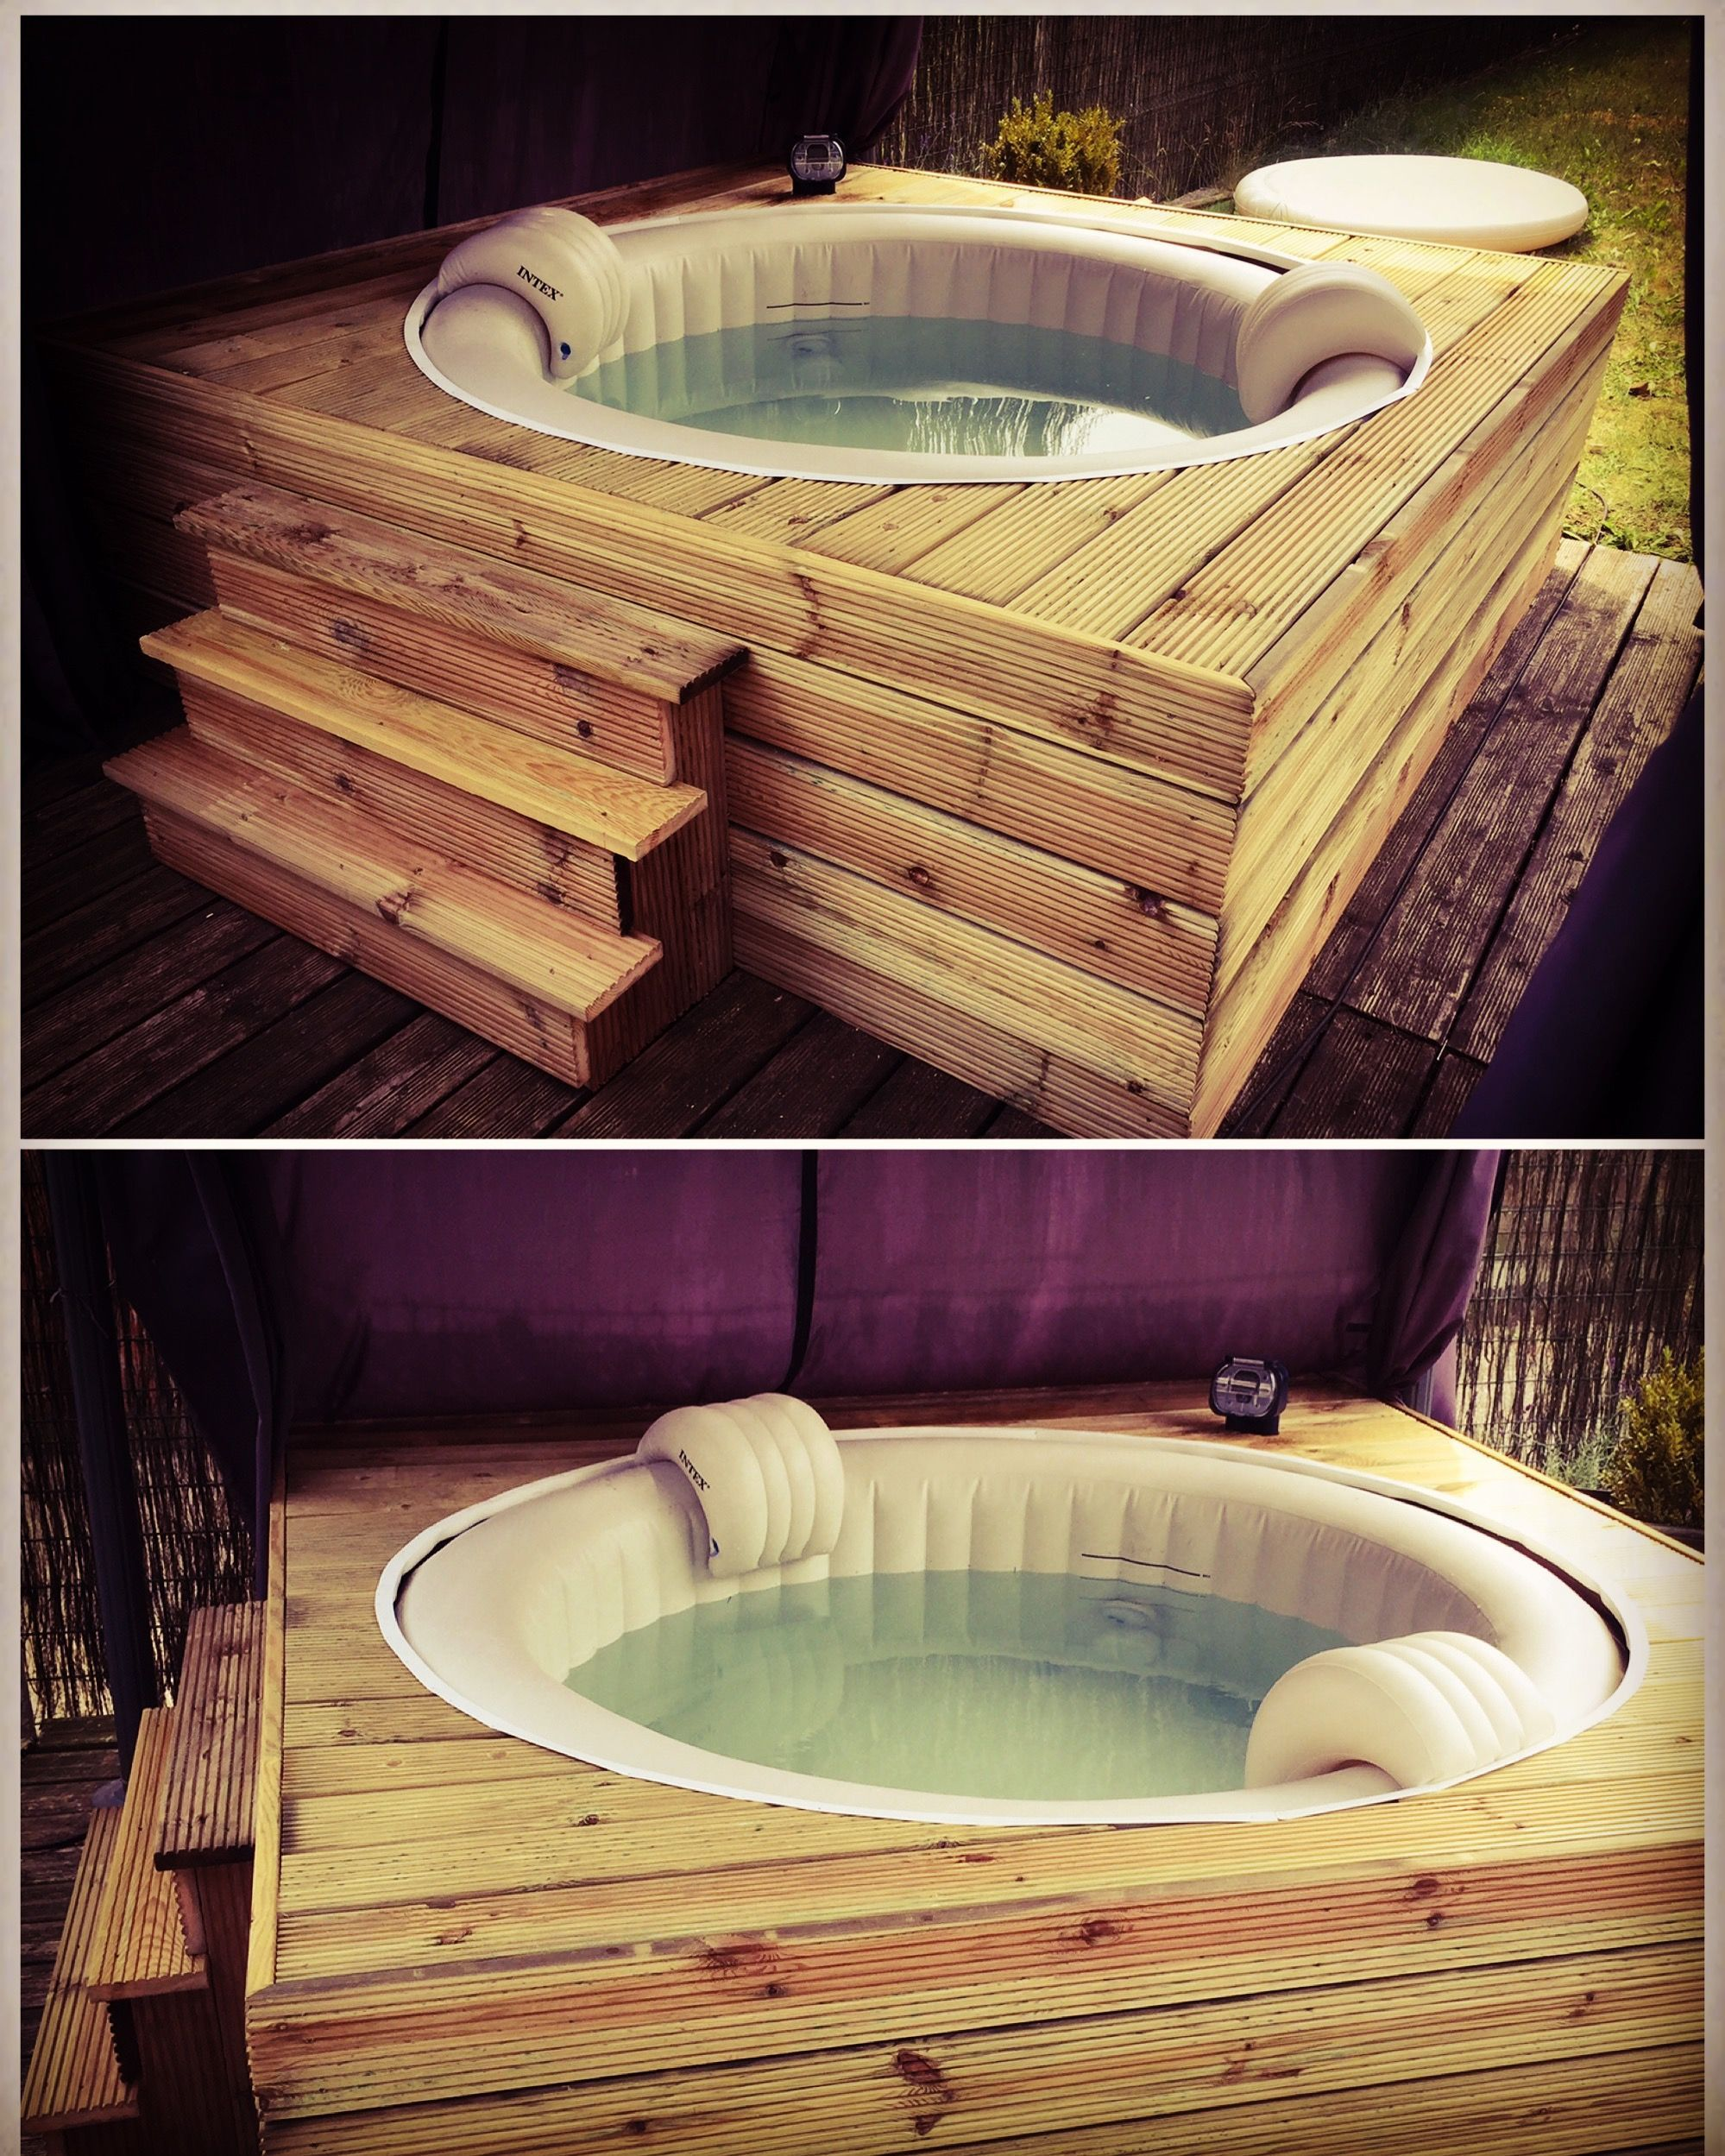 Habillage jacuzzi gonflable intex. Fabrication d'un habillage en sapin #hottubdeck